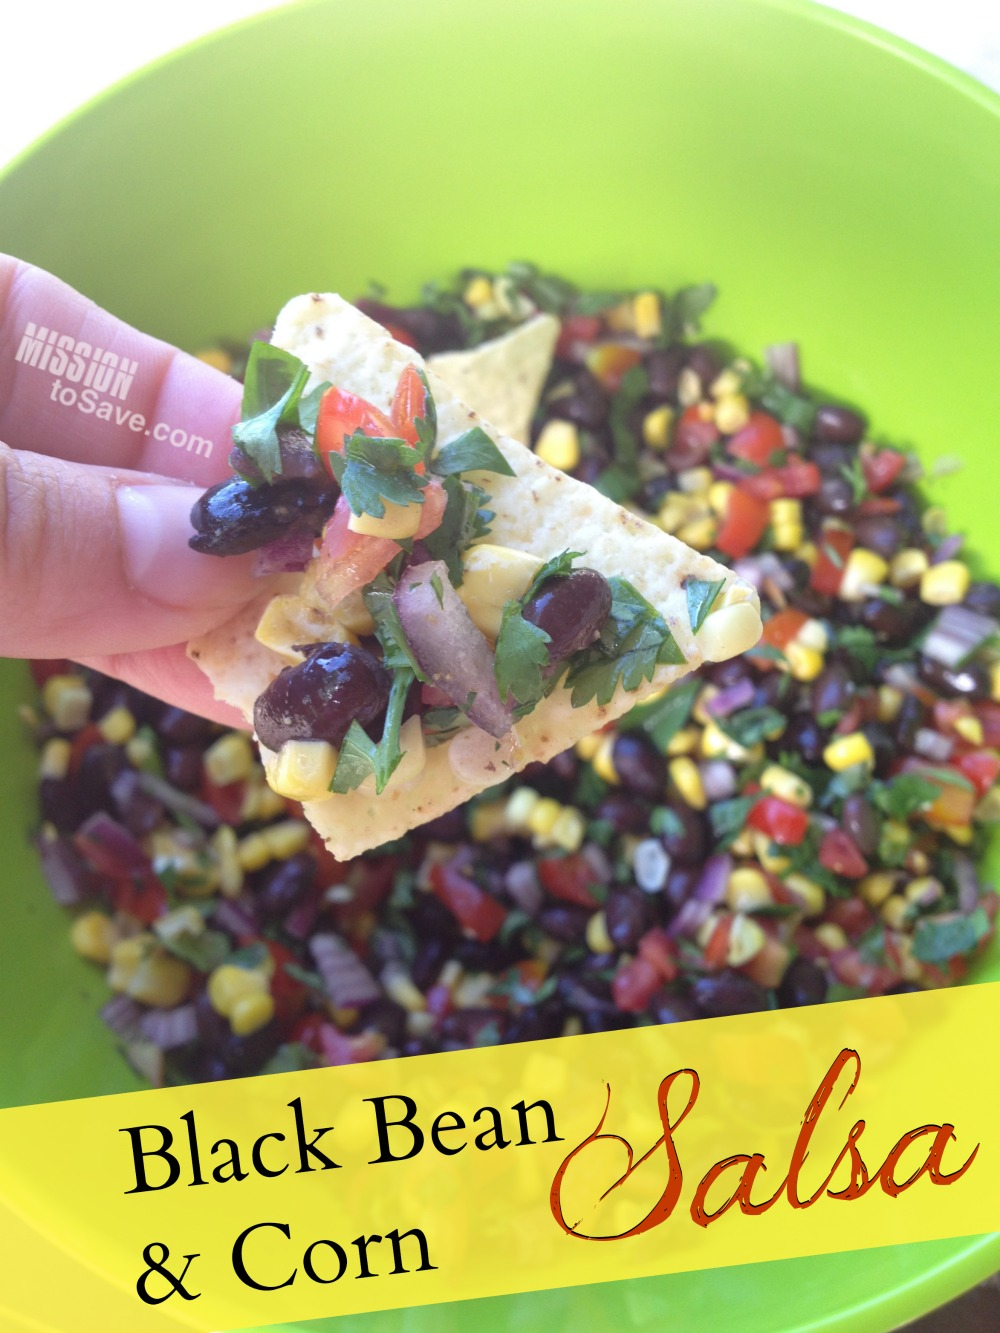 Black bean and corn salsa recipe is the perfect snack dip for summer coookouts or watching the big game.